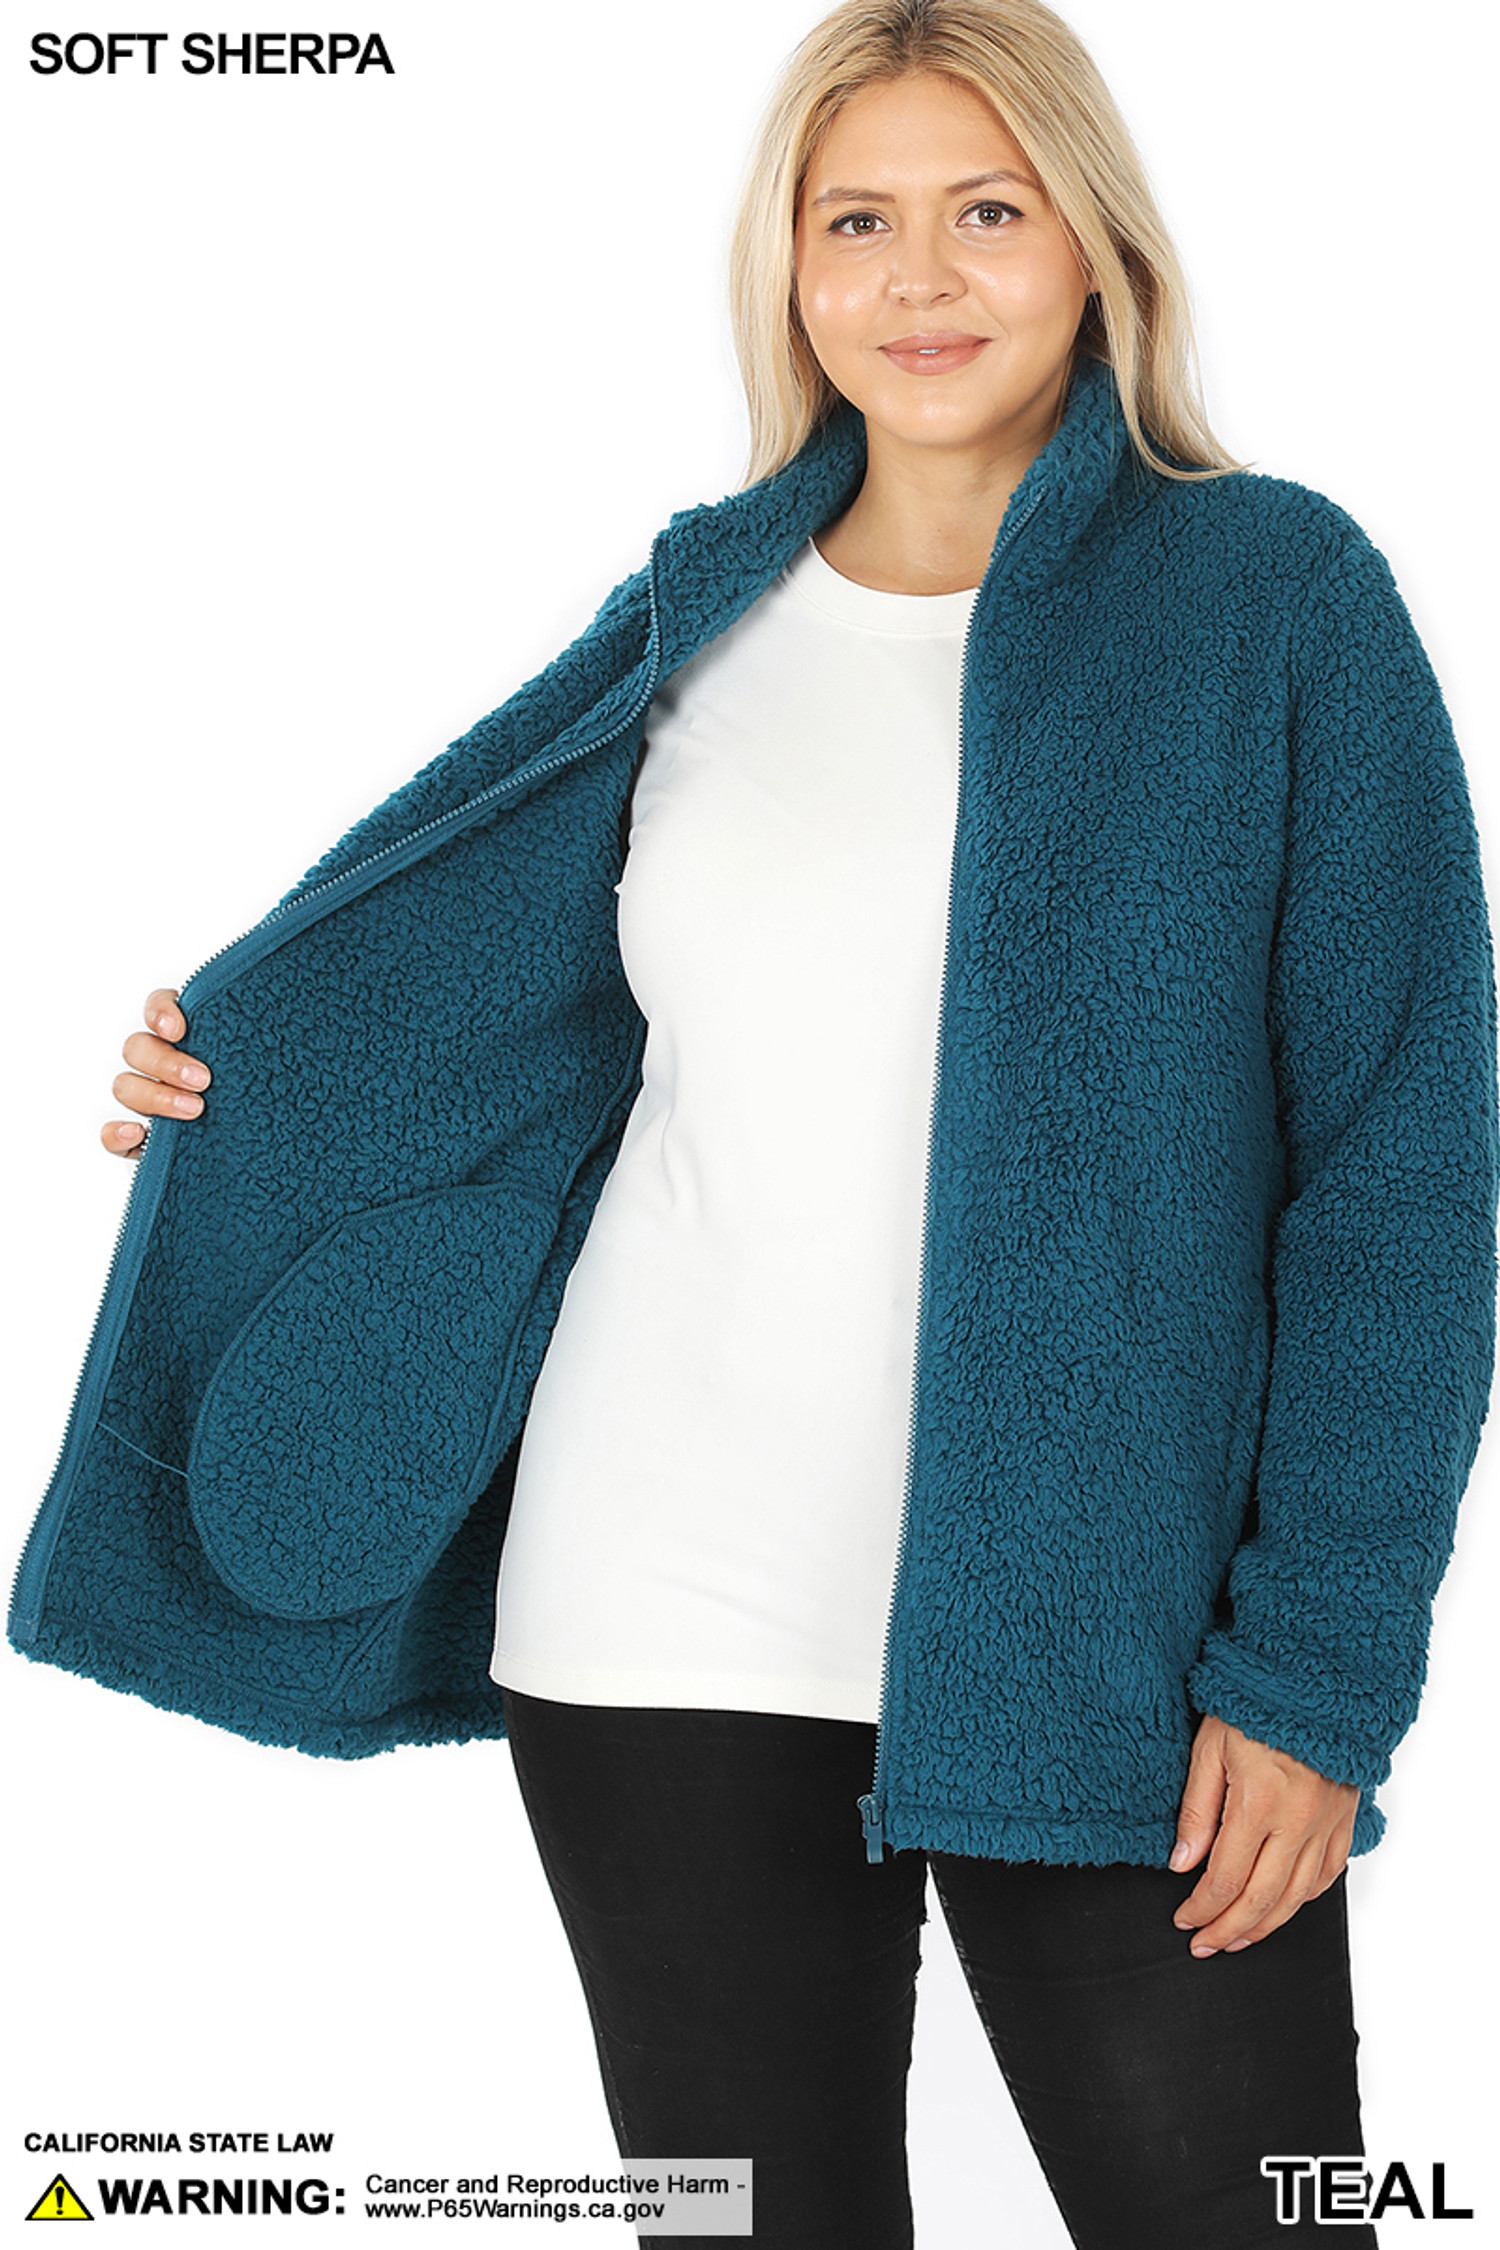 Front image of Teal Sherpa Zip Up Plus Size Jacket with Side Pockets unzipped and held open to show the inside